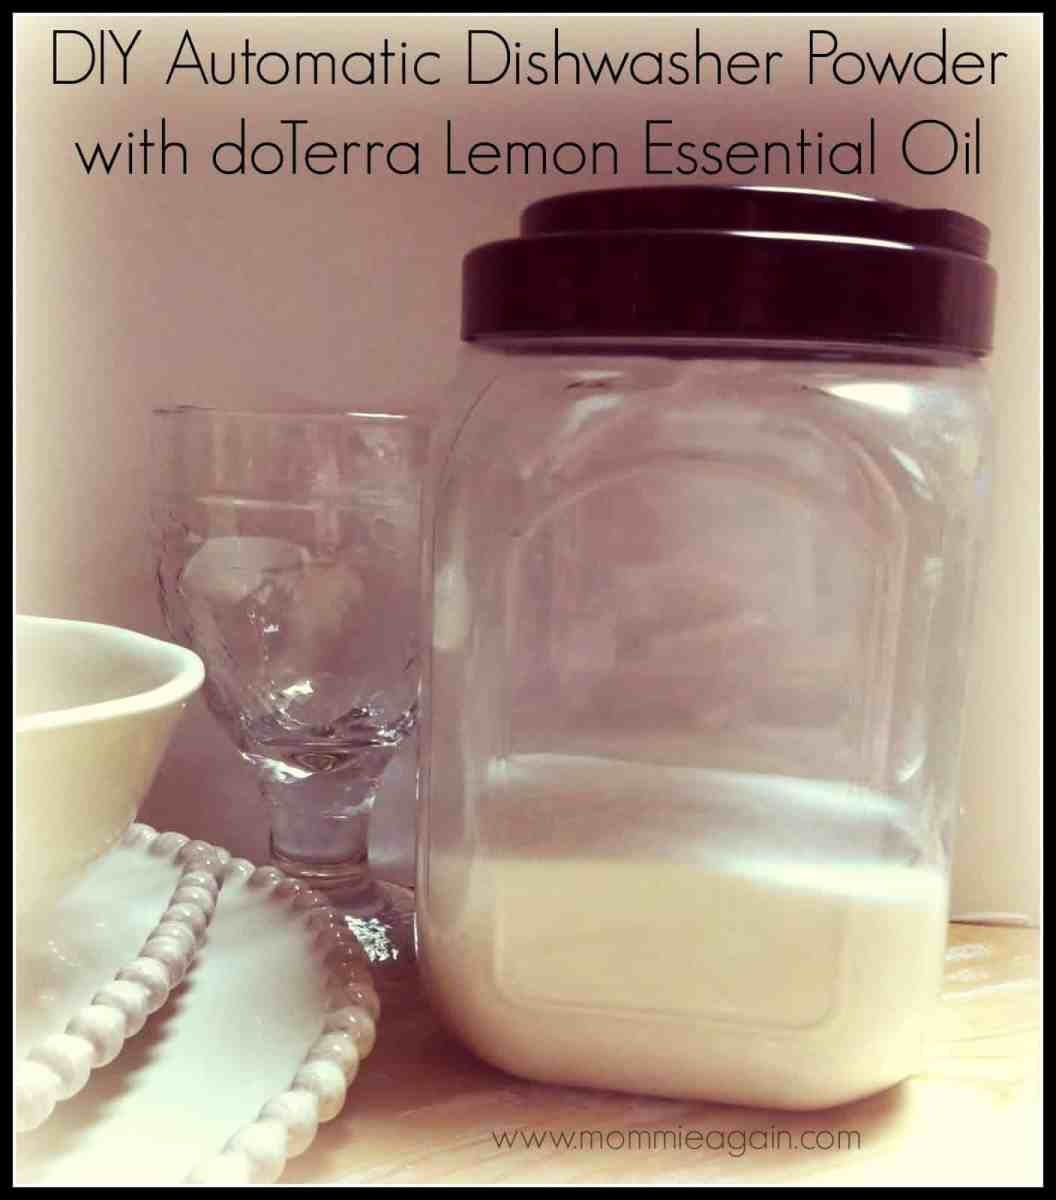 DIY Automatic Dishwasher Powder Lemon Essential Oil